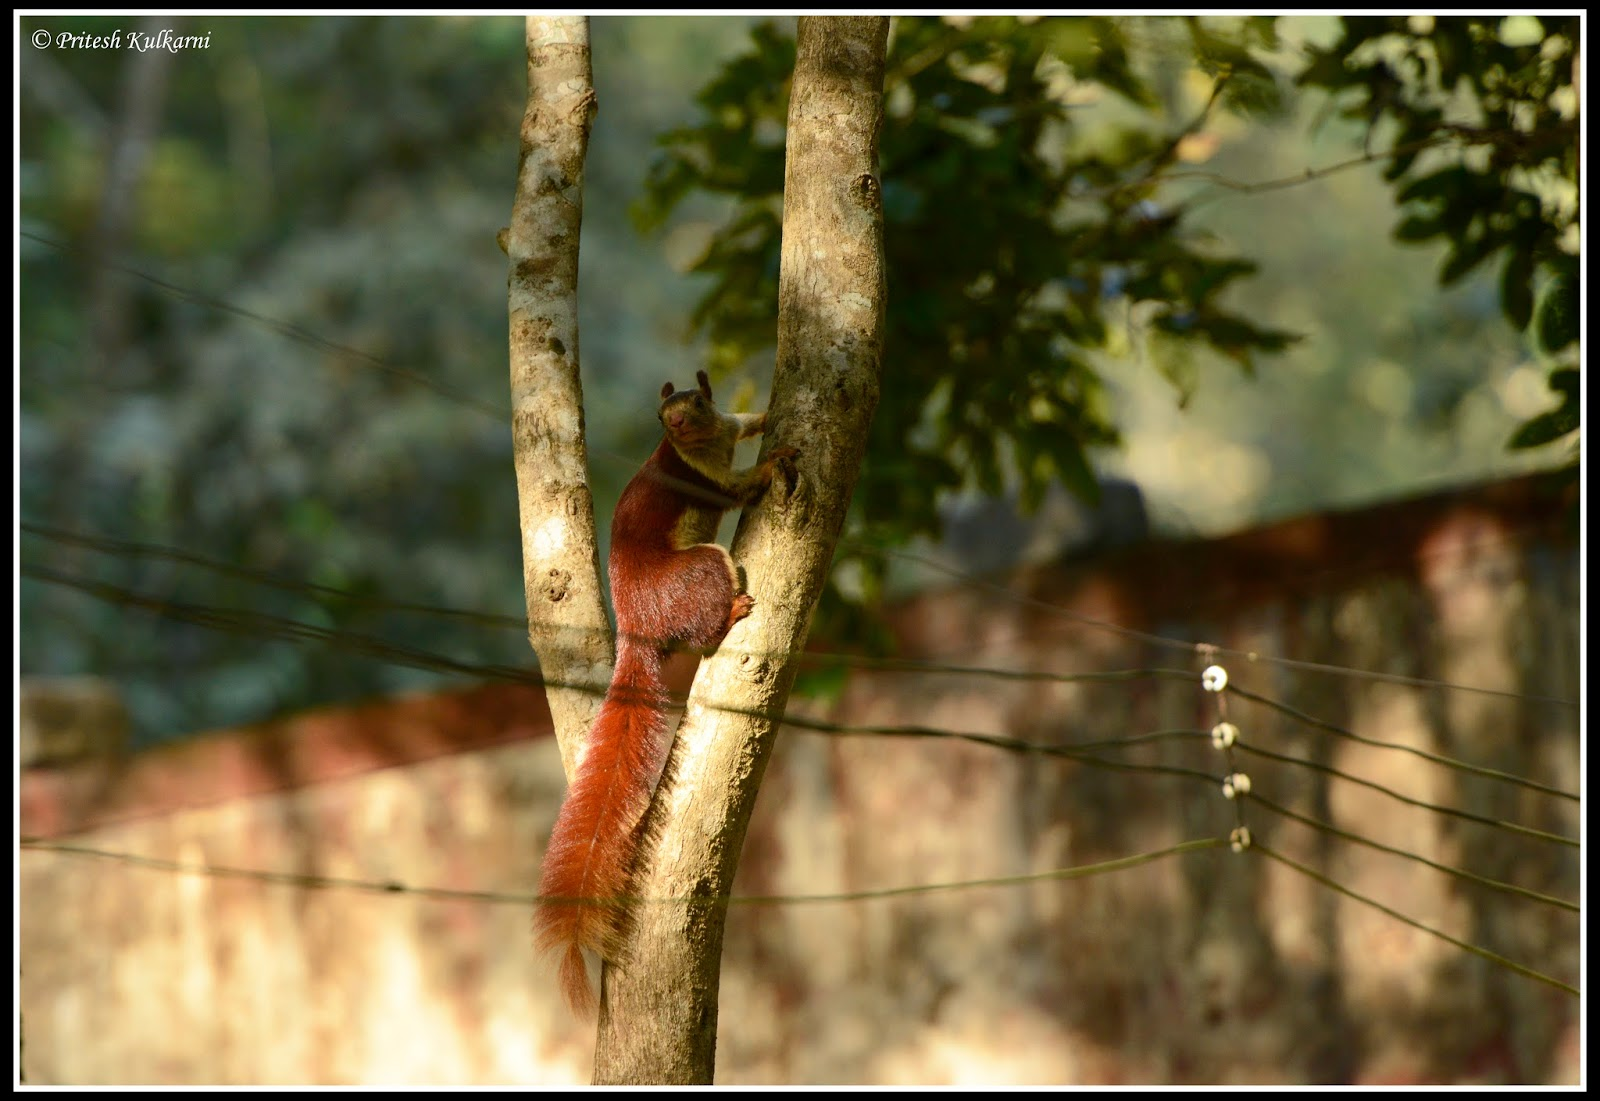 Malabar Giant Squirrel at Old Magazine House